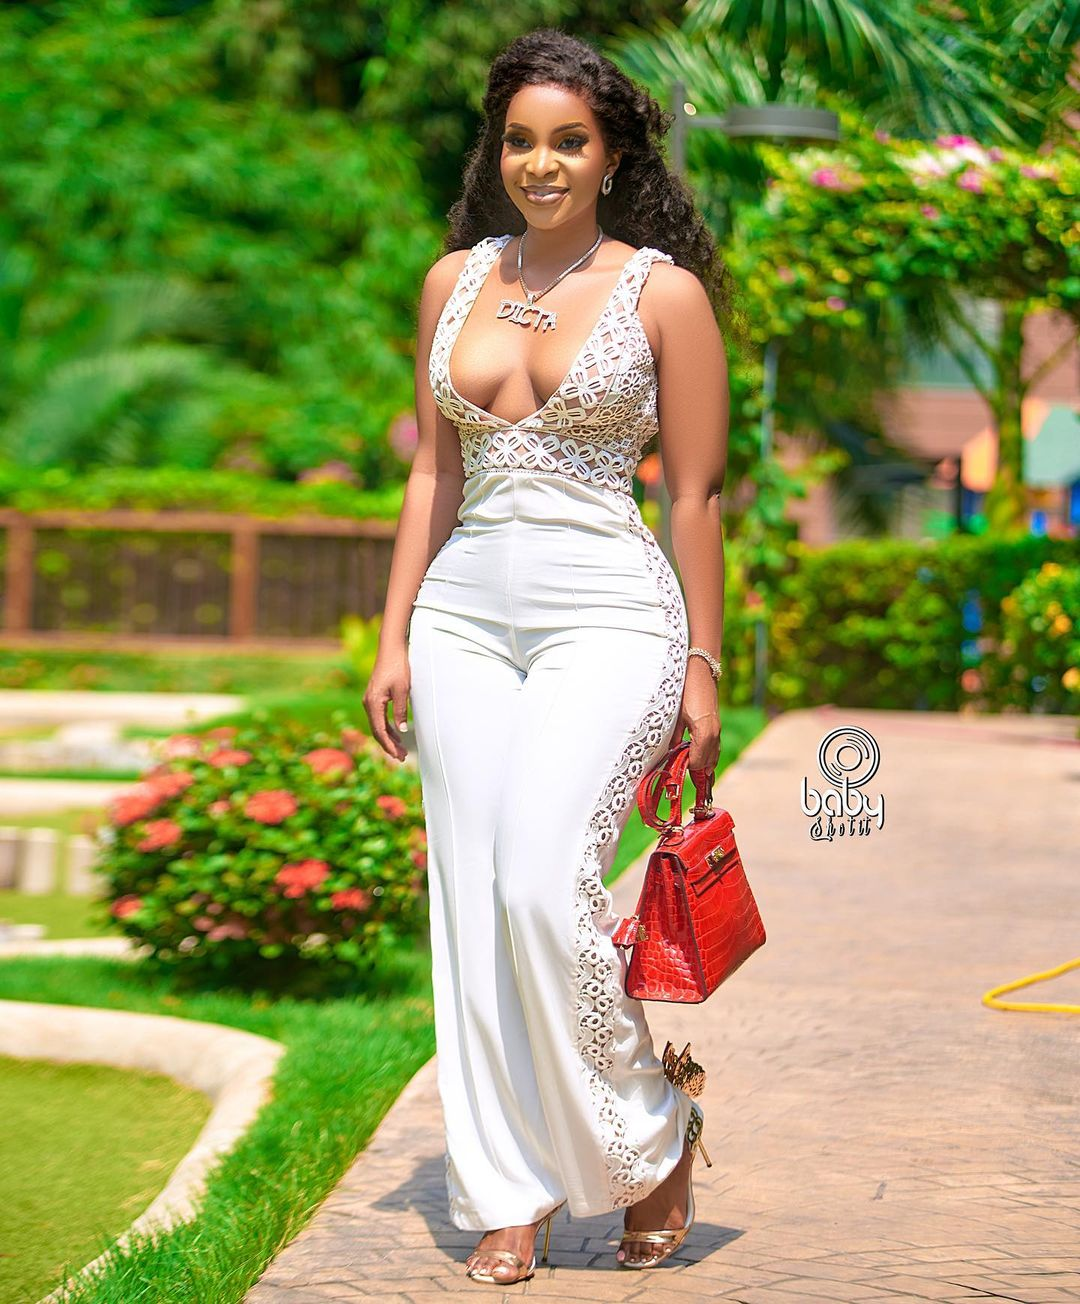 Benedicta Gafah displays her rounded and juicy bo()bs in new video 2